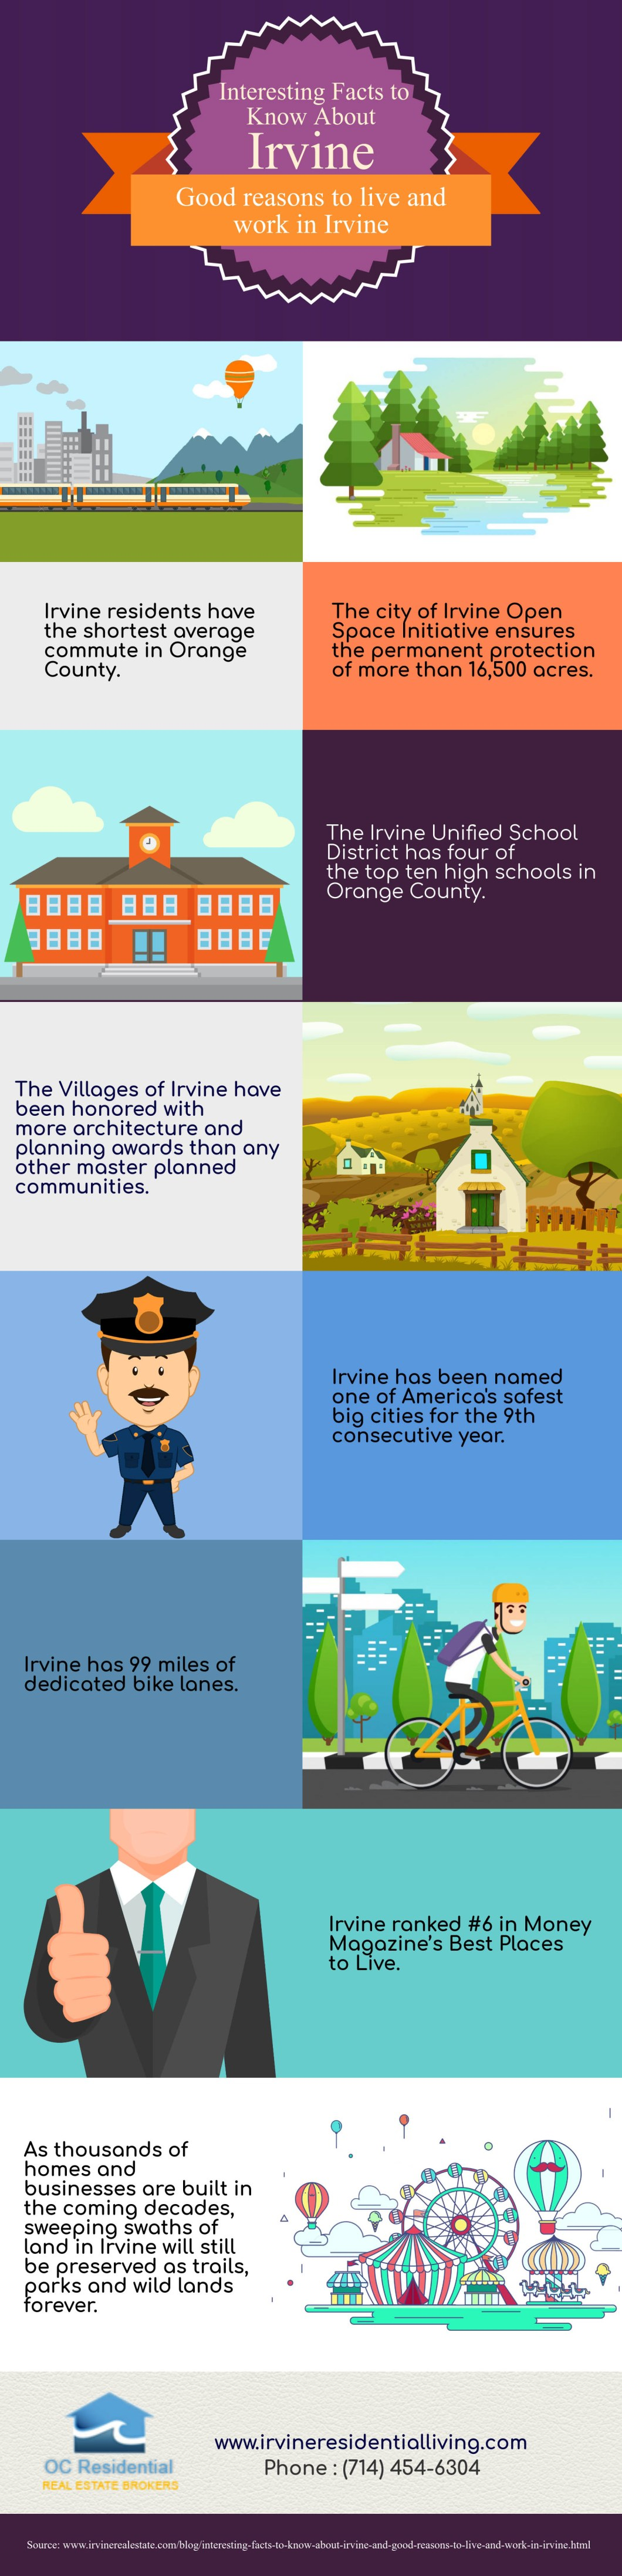 Good Reasons to Live in Irvine, California - Infographic